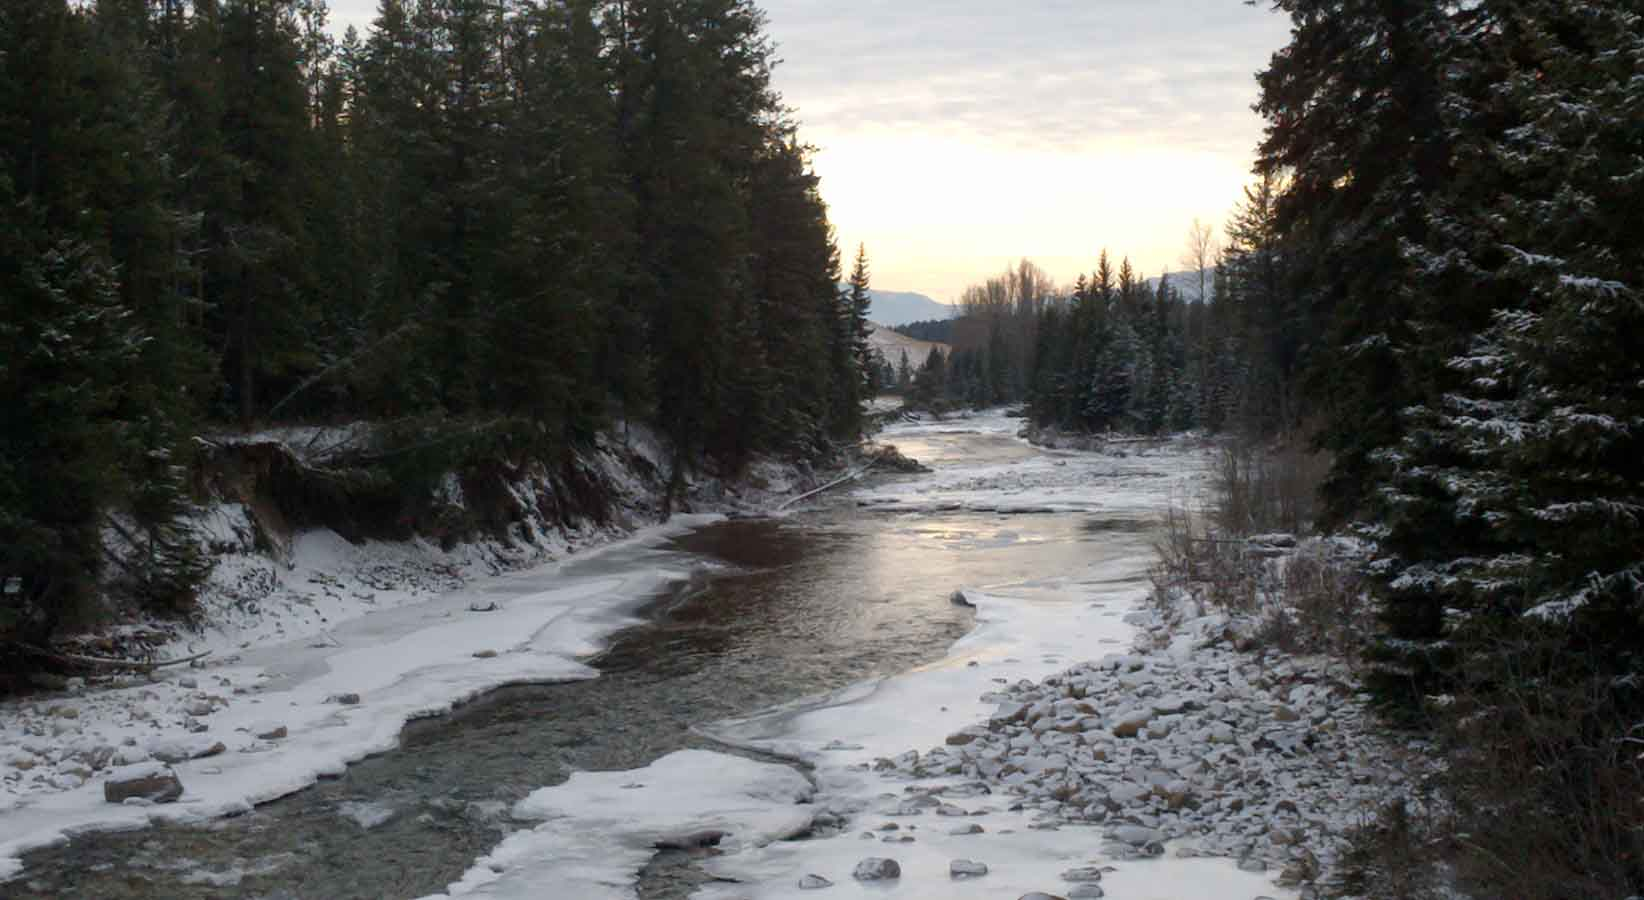 East Kootenay river with snow and ice